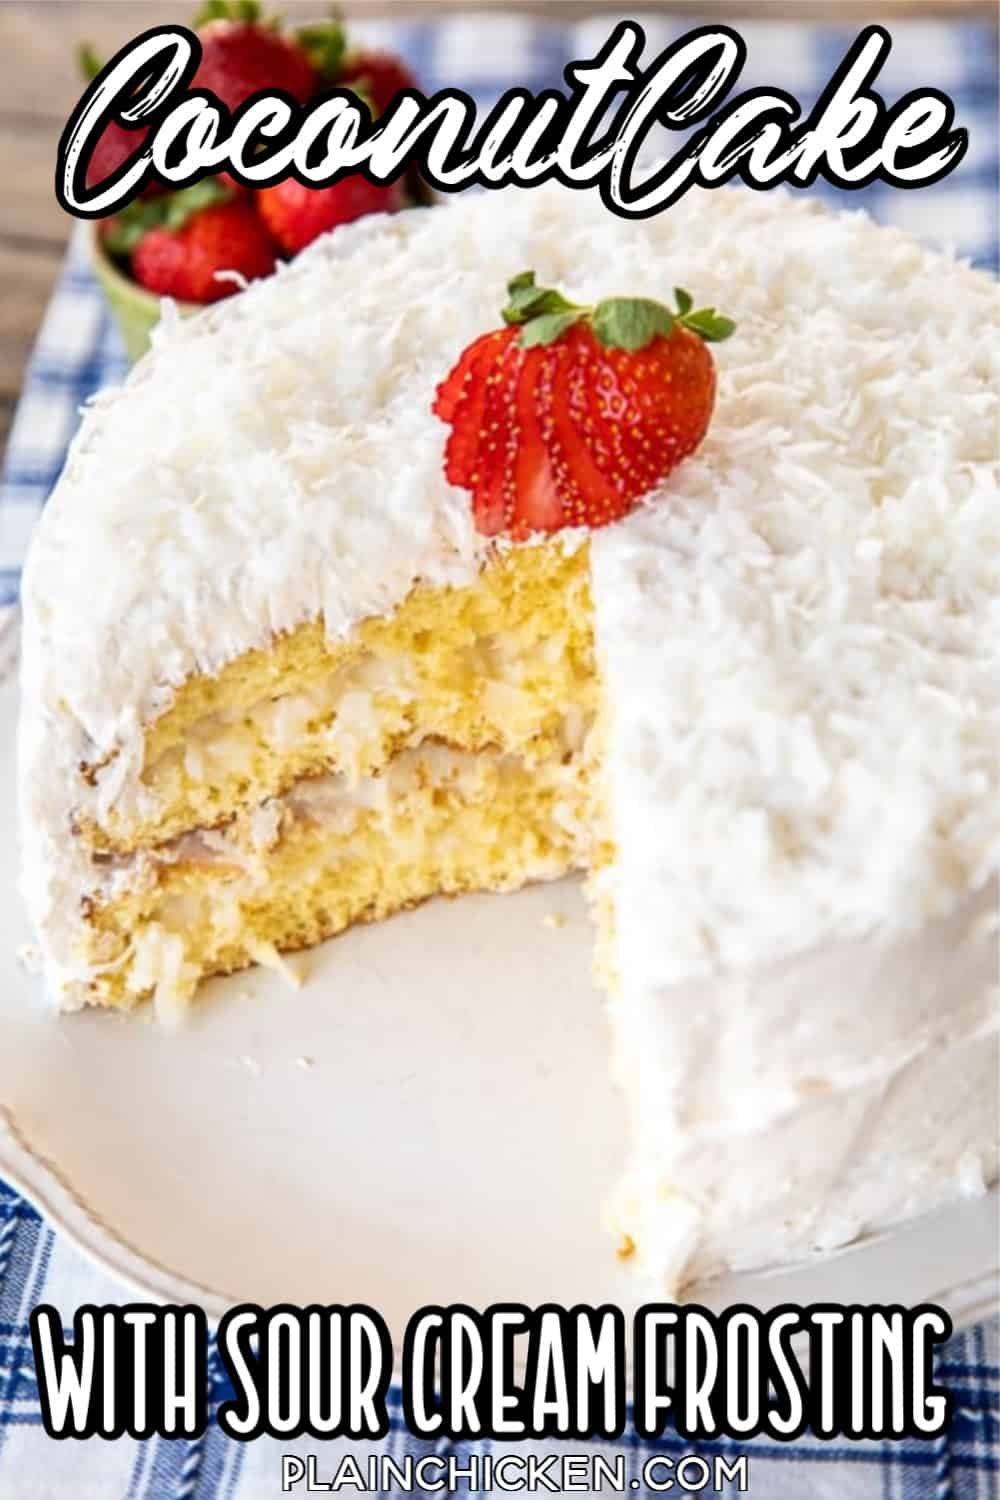 Coconut cake the sour cream cool whip frosting makes